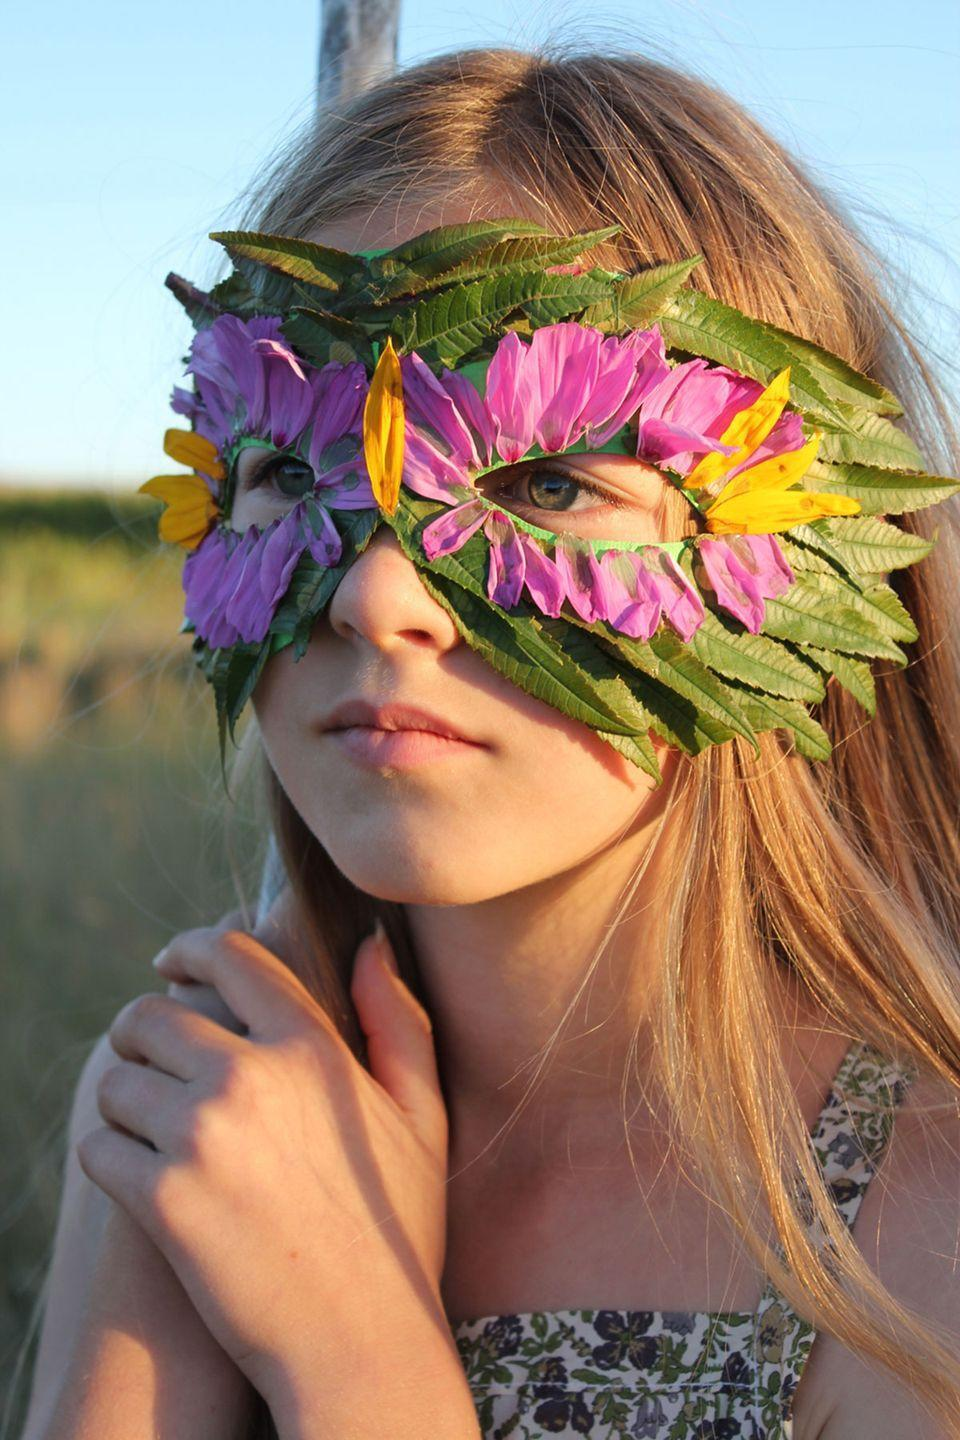 """<p>Make this beautiful mask with your favorite color flower petals. </p><p><strong>Get the tutorial at <a href=""""http://mermagblog.com/diy-nature-mask-with-leaves-and-flowers/"""" rel=""""nofollow noopener"""" target=""""_blank"""" data-ylk=""""slk:Mer Mag"""" class=""""link rapid-noclick-resp"""">Mer Mag</a>. </strong></p><p><a class=""""link rapid-noclick-resp"""" href=""""https://www.amazon.com/Darice-35443-54-Single-2-Inch-144-Pack/dp/B0093JNXGW/?tag=syn-yahoo-20&ascsubtag=%5Bartid%7C10050.g.3480%5Bsrc%7Cyahoo-us"""" rel=""""nofollow noopener"""" target=""""_blank"""" data-ylk=""""slk:SHOP LEAVES"""">SHOP LEAVES</a> </p>"""